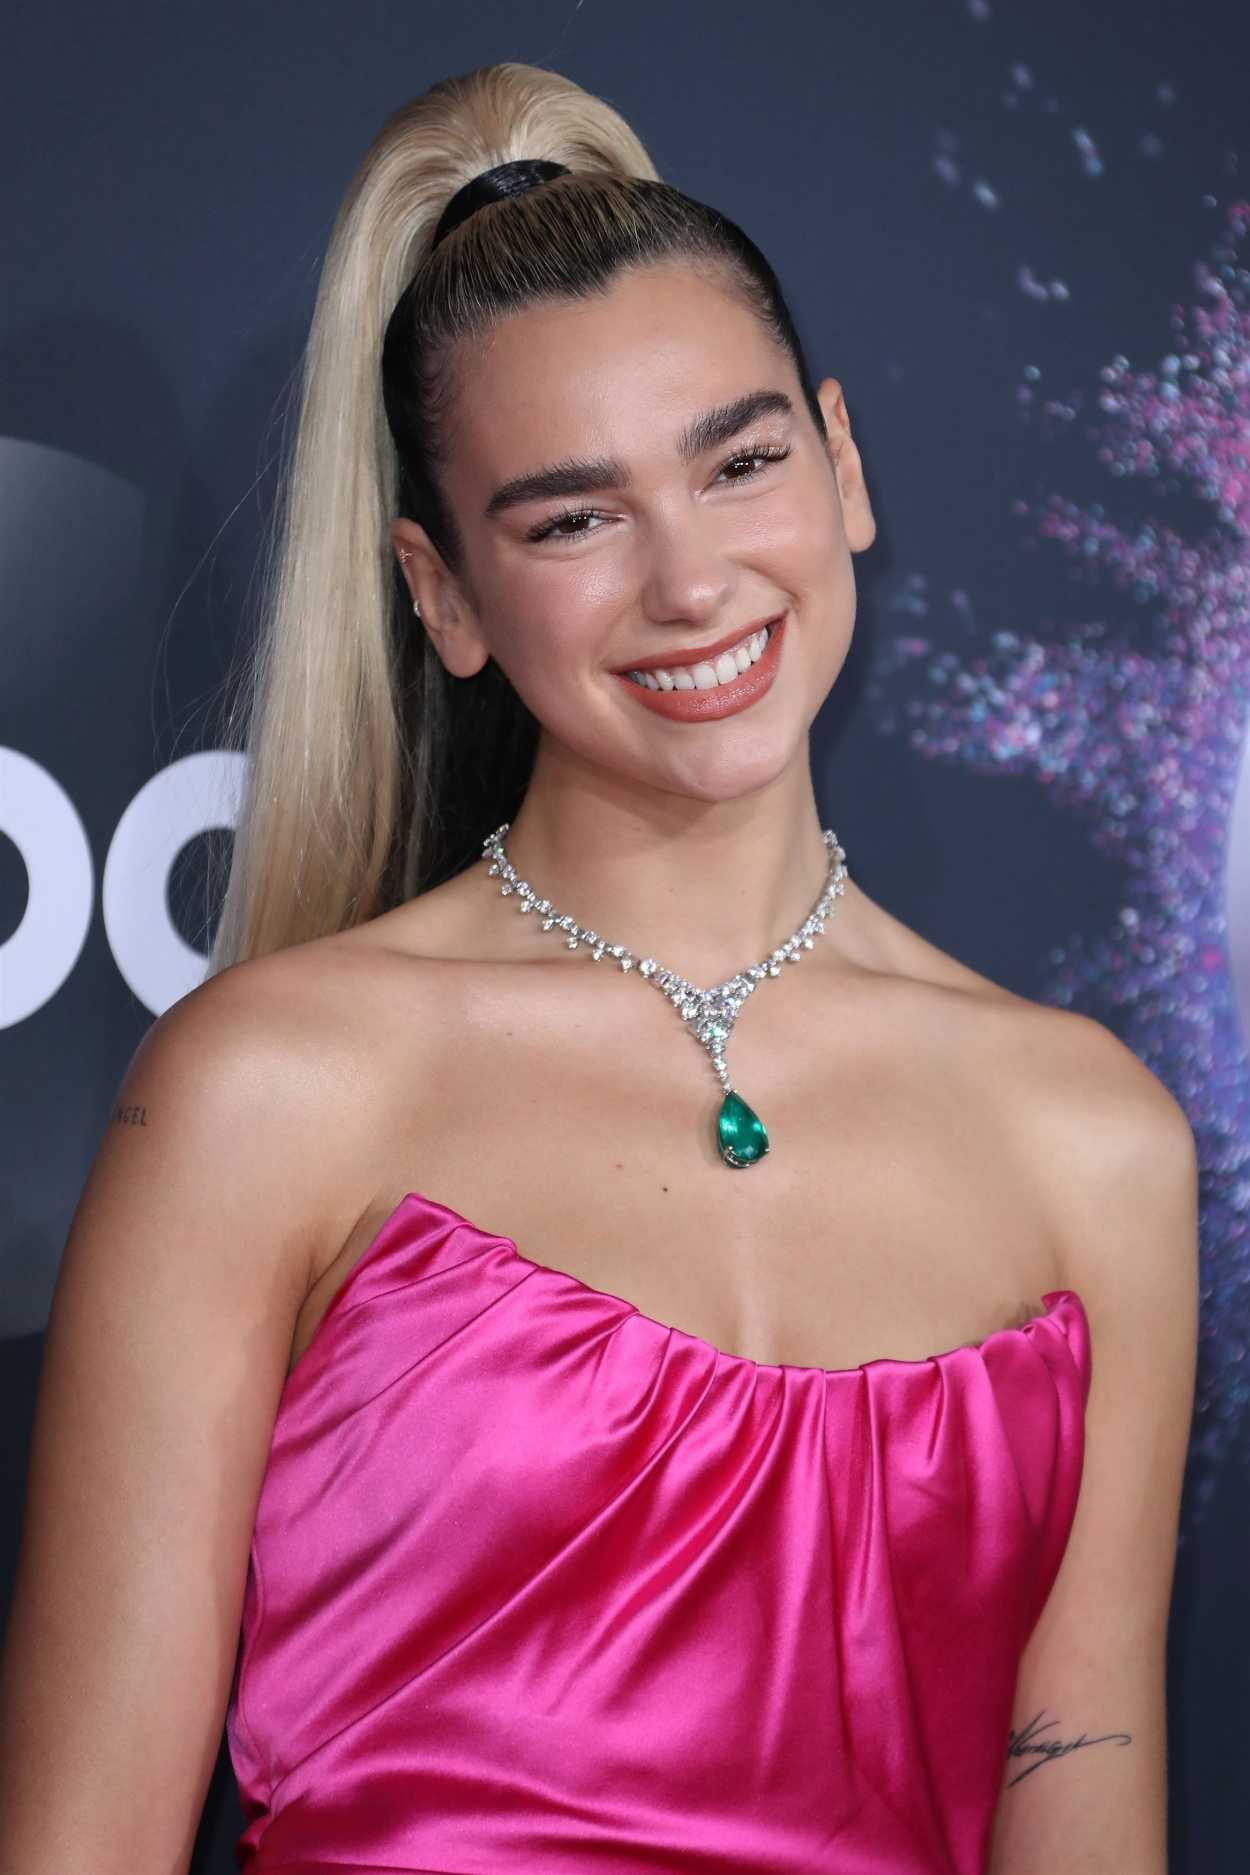 dua lipa attends the 2019 american music awards at